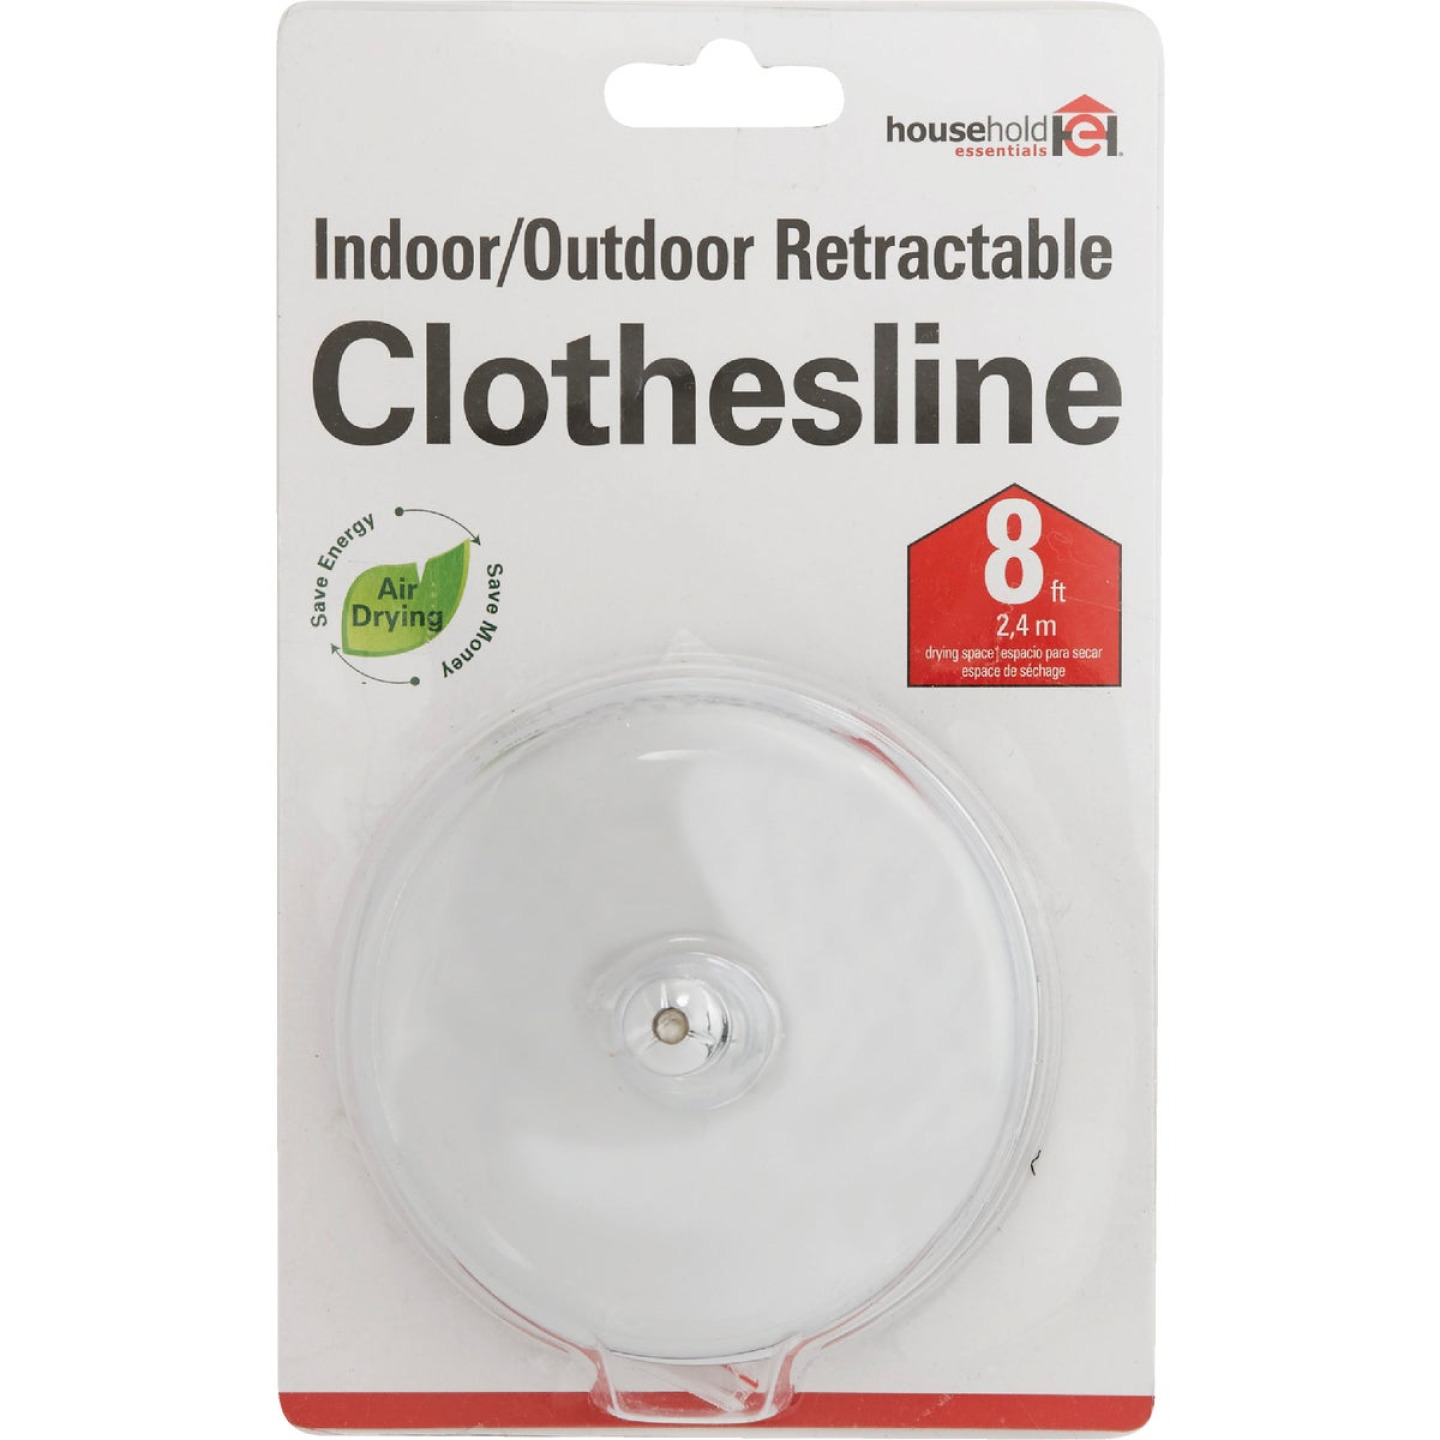 Household Essentials 8 Ft. 6.6 Lb. Capacity Stainless Steel Retractable Clothesline Image 2